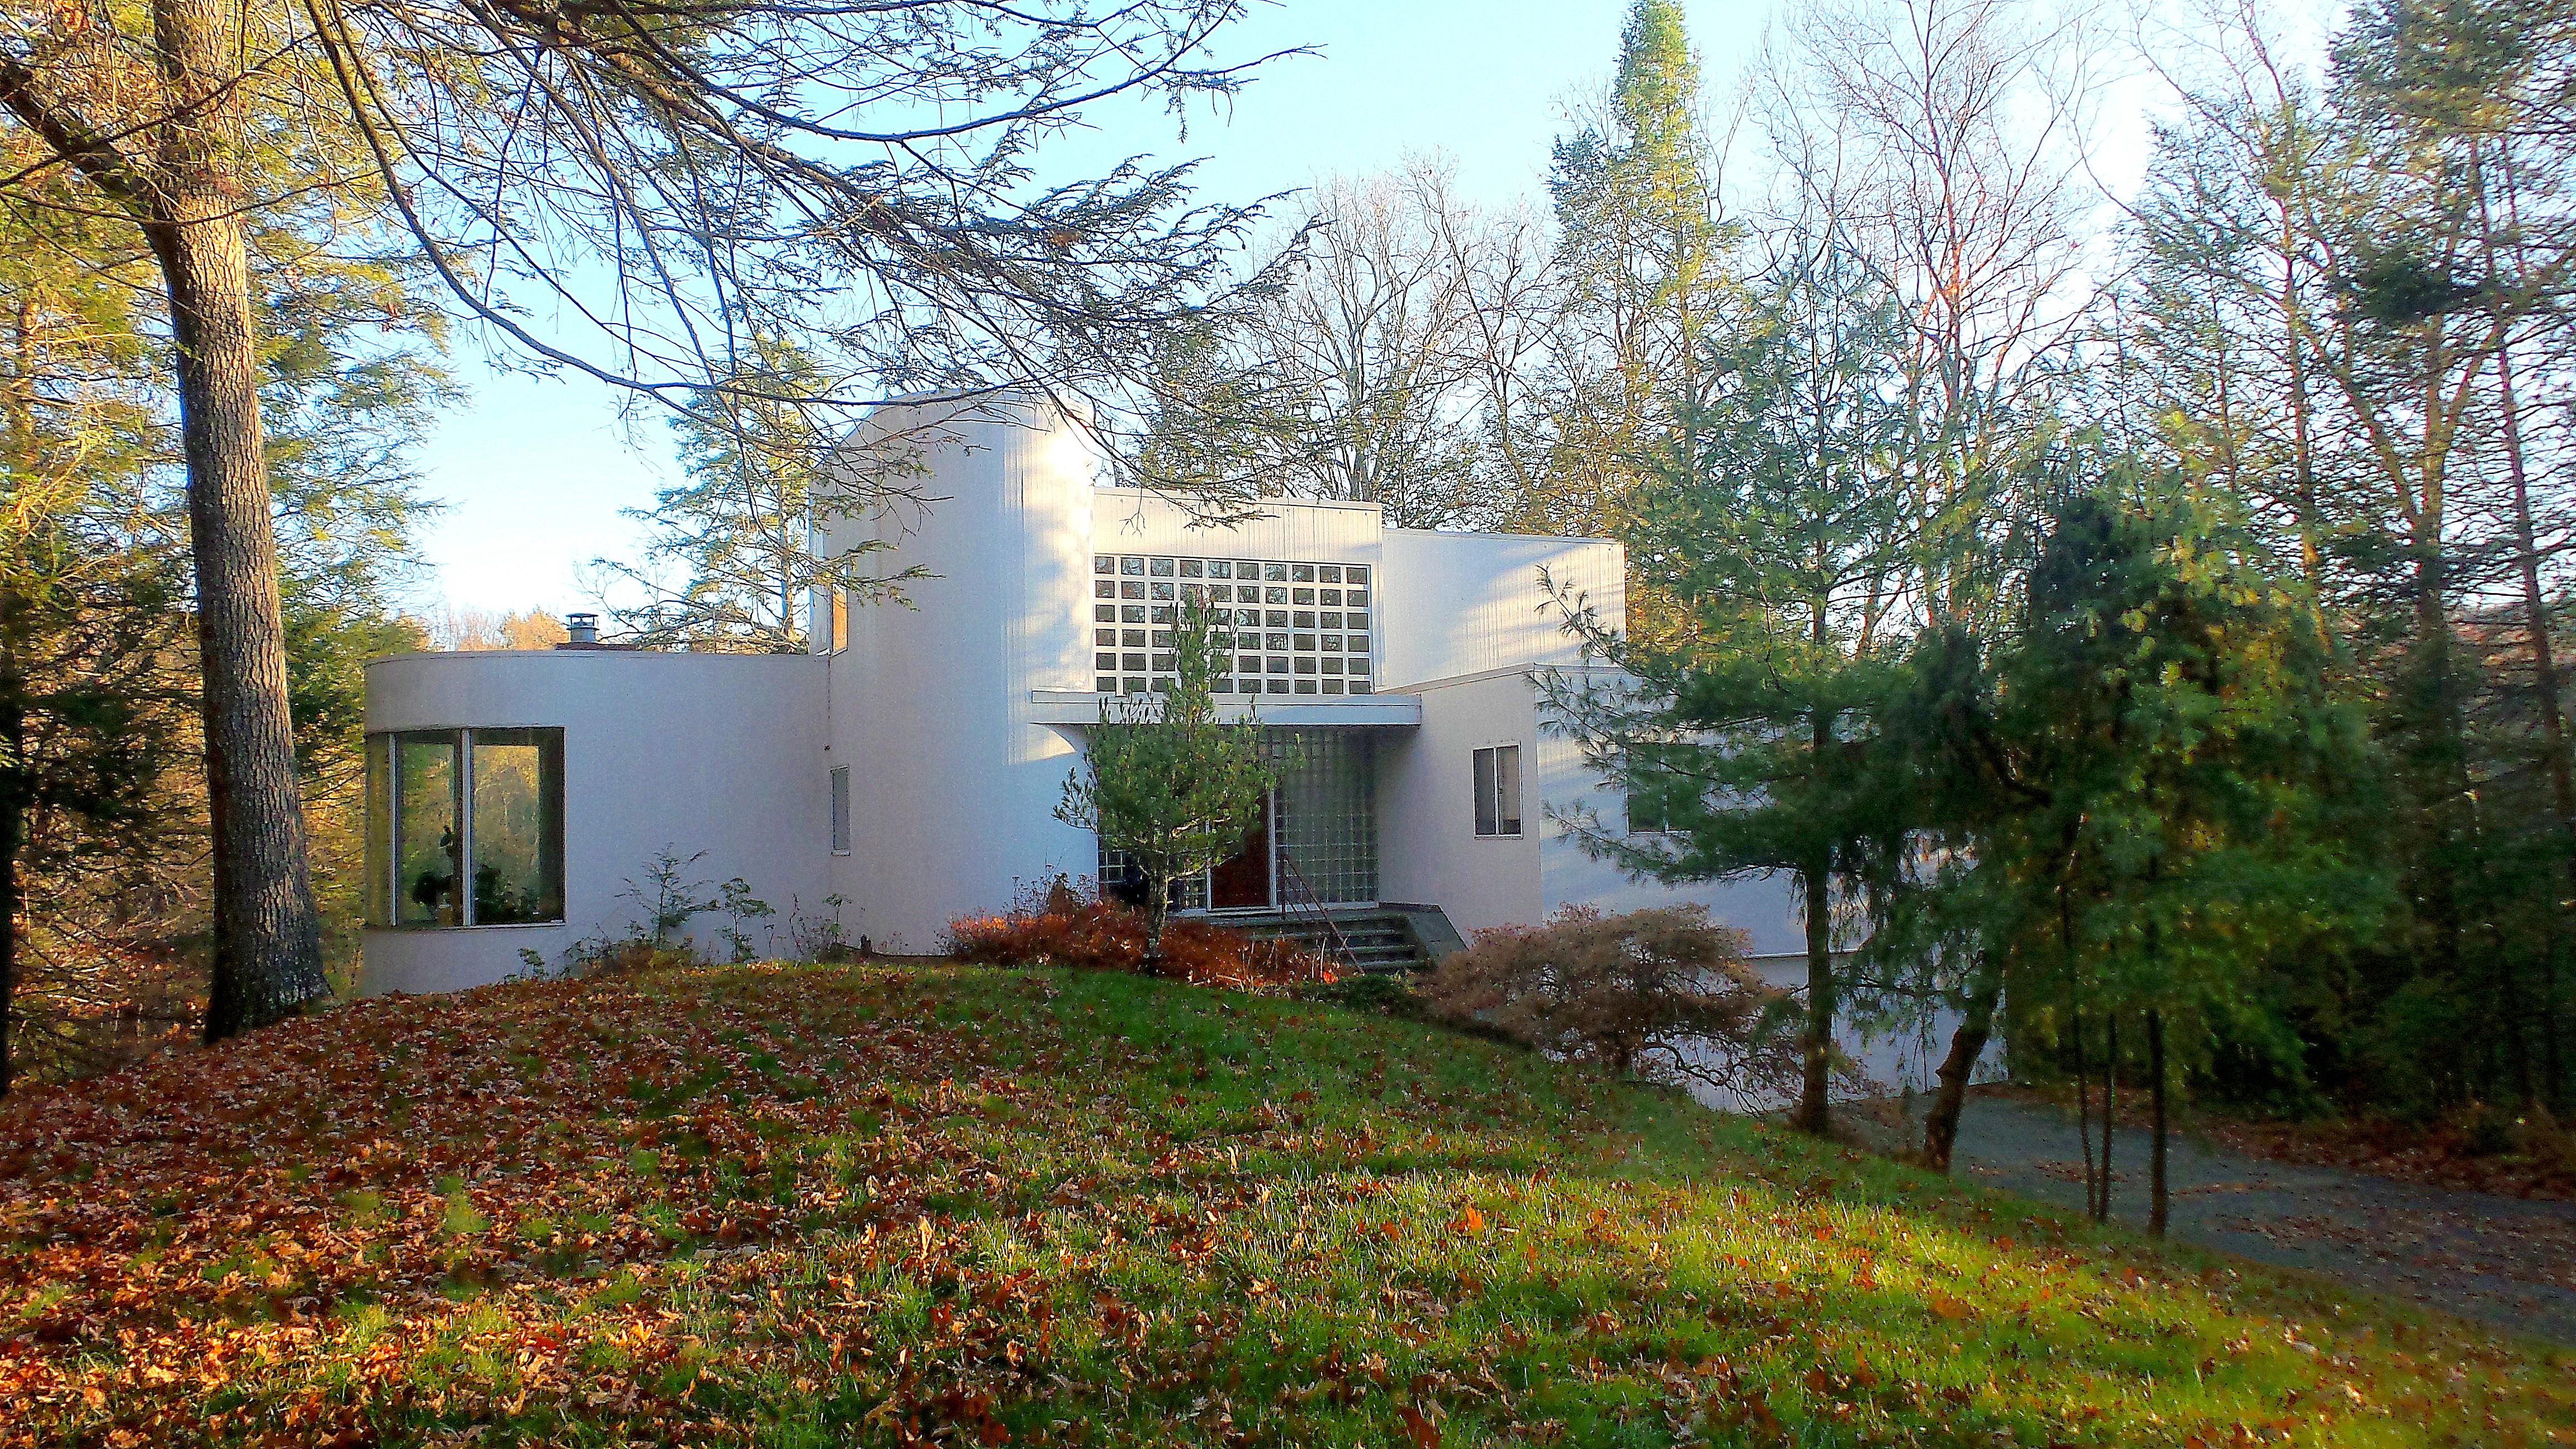 Casa Unifamiliar por un Venta en Bauhaus-Inspired Contemporary 27 Holiday Point Rd Sherman, Connecticut 06784 Estados Unidos